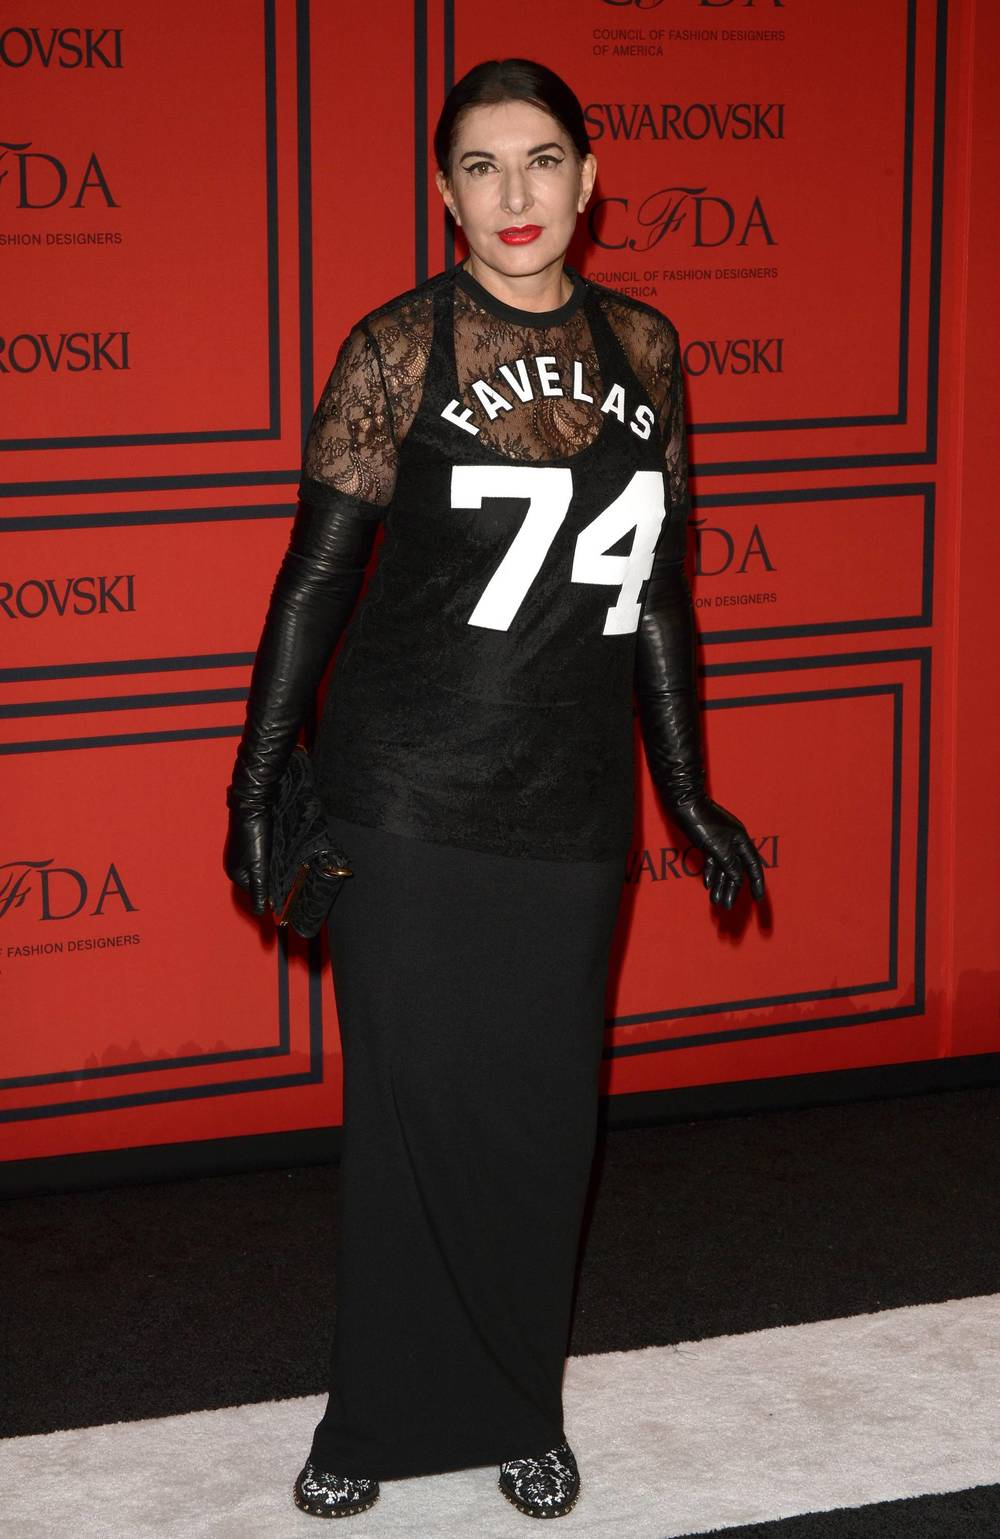 Marina Abramovic at CFDA Awards 2013